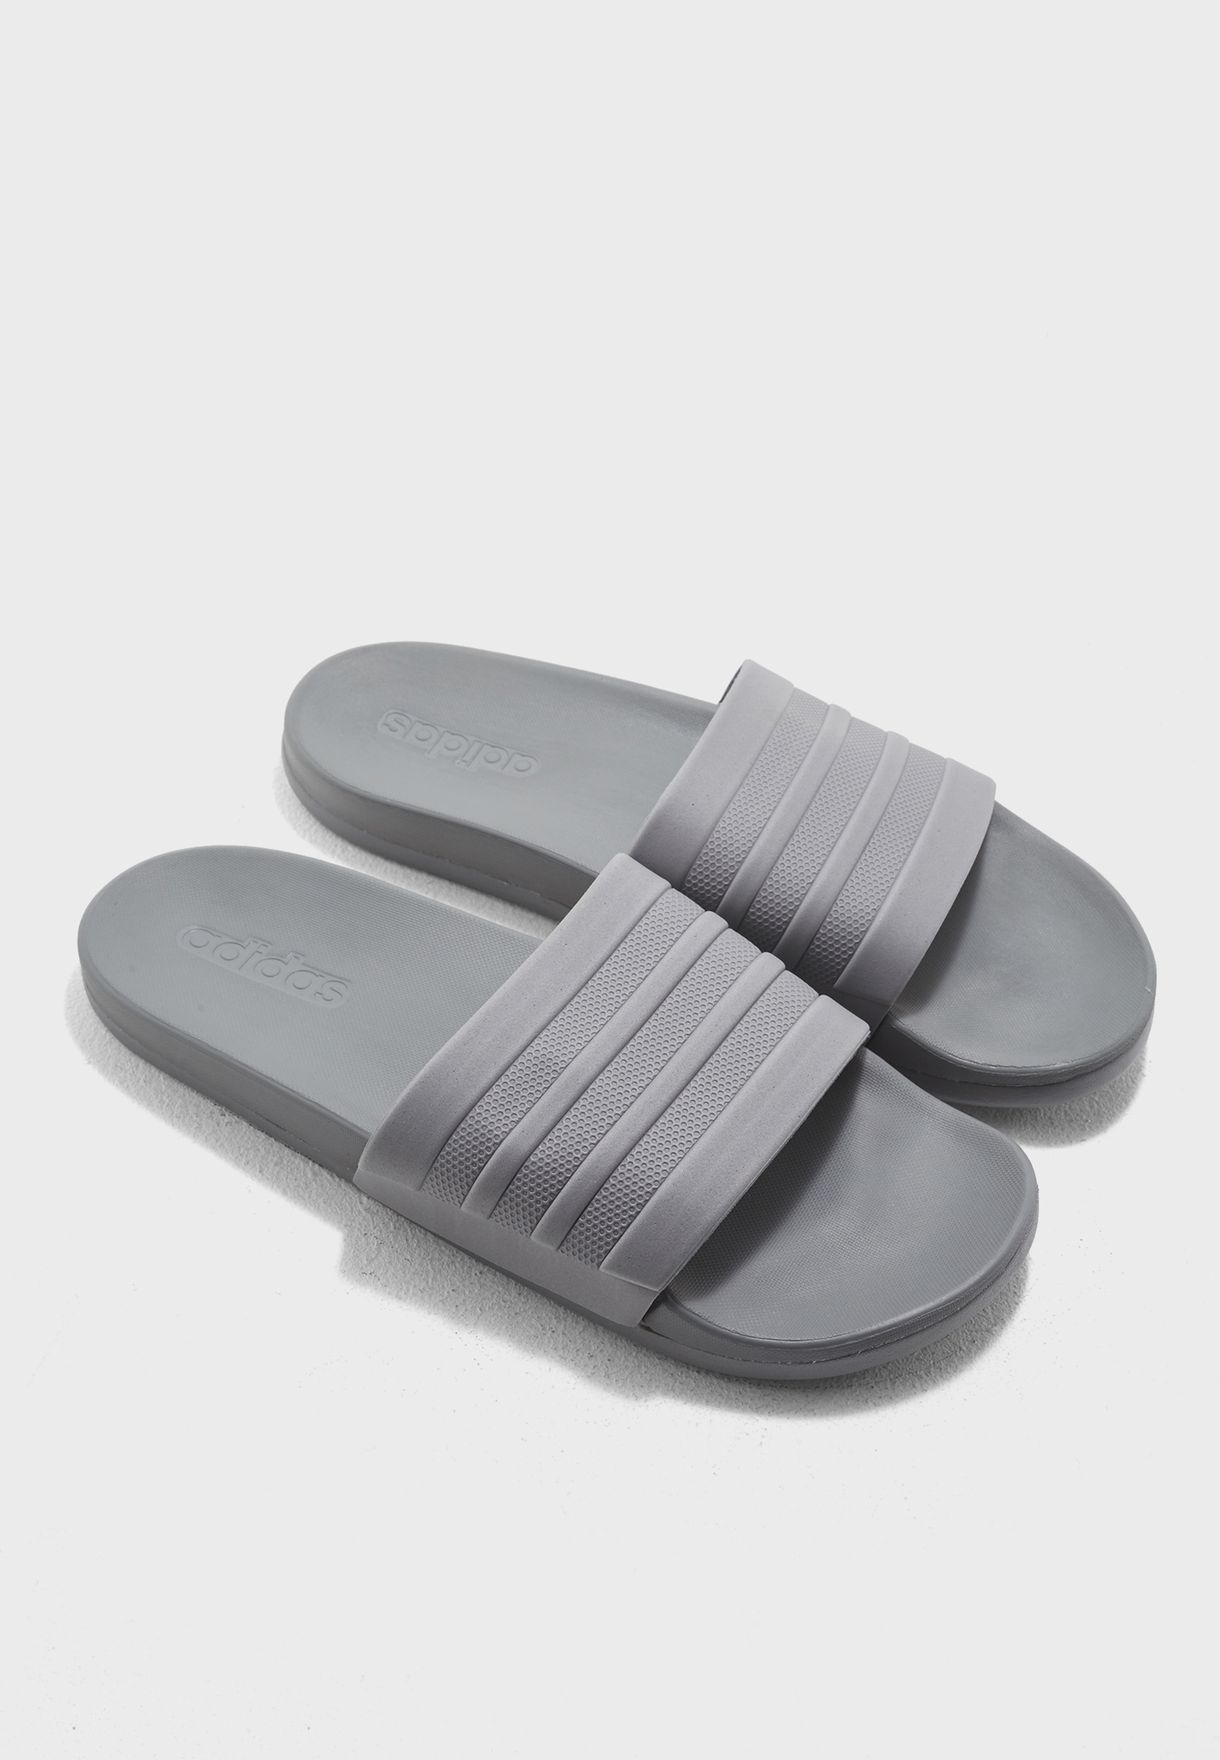 3b9b7d86e6d4 Shop adidas grey Adilette CF+ Mono Slides S80977 for Men in UAE ...